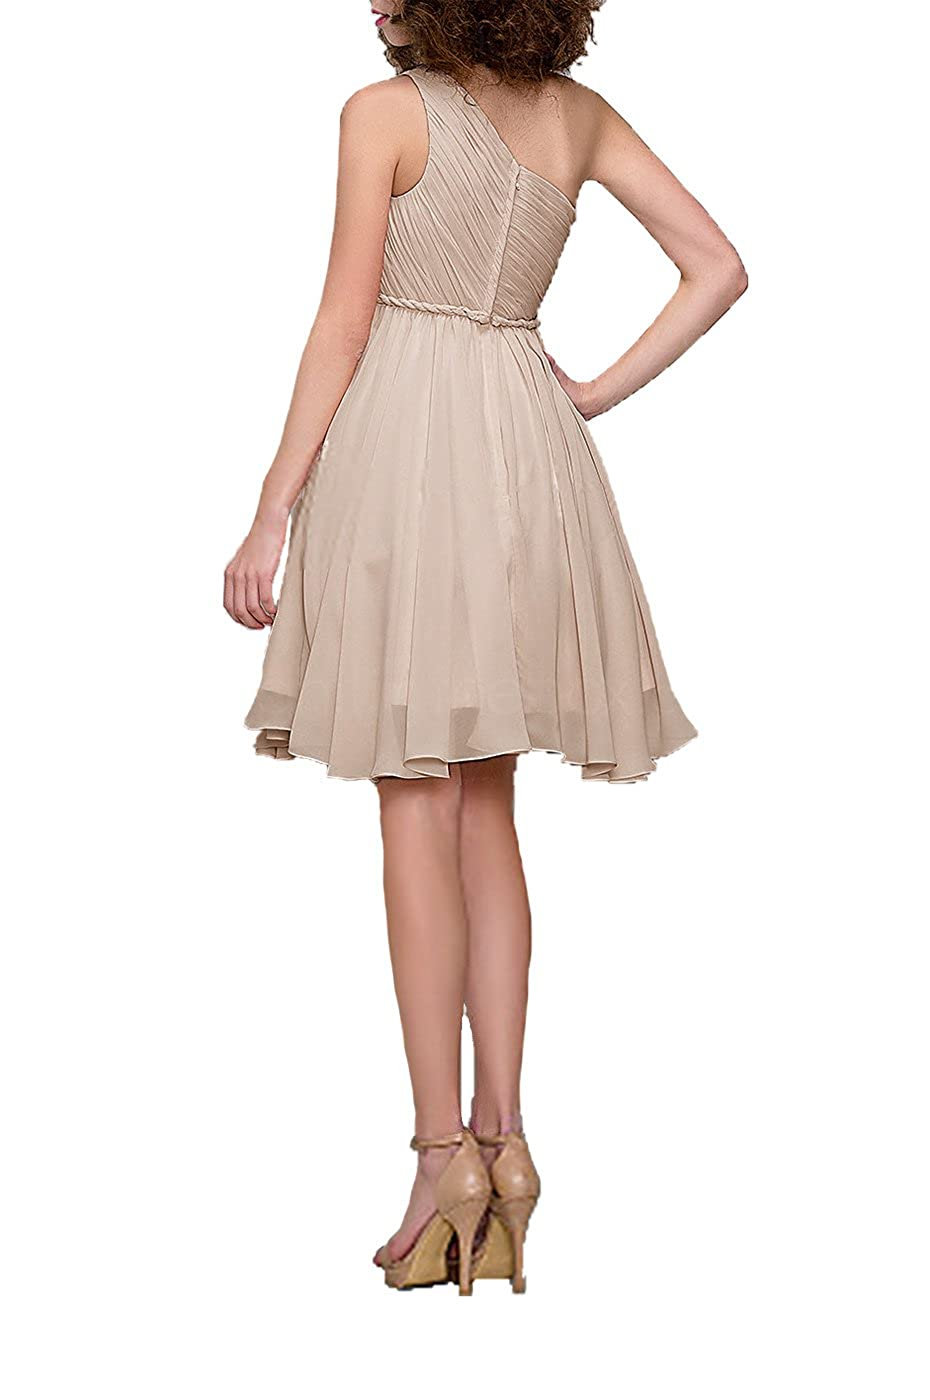 4f81752535f Amazon.com  99Gown Cocktail Dress One Shoulder Prom Formal Dresses for Women  Bridesmaid Dresses Short  Clothing